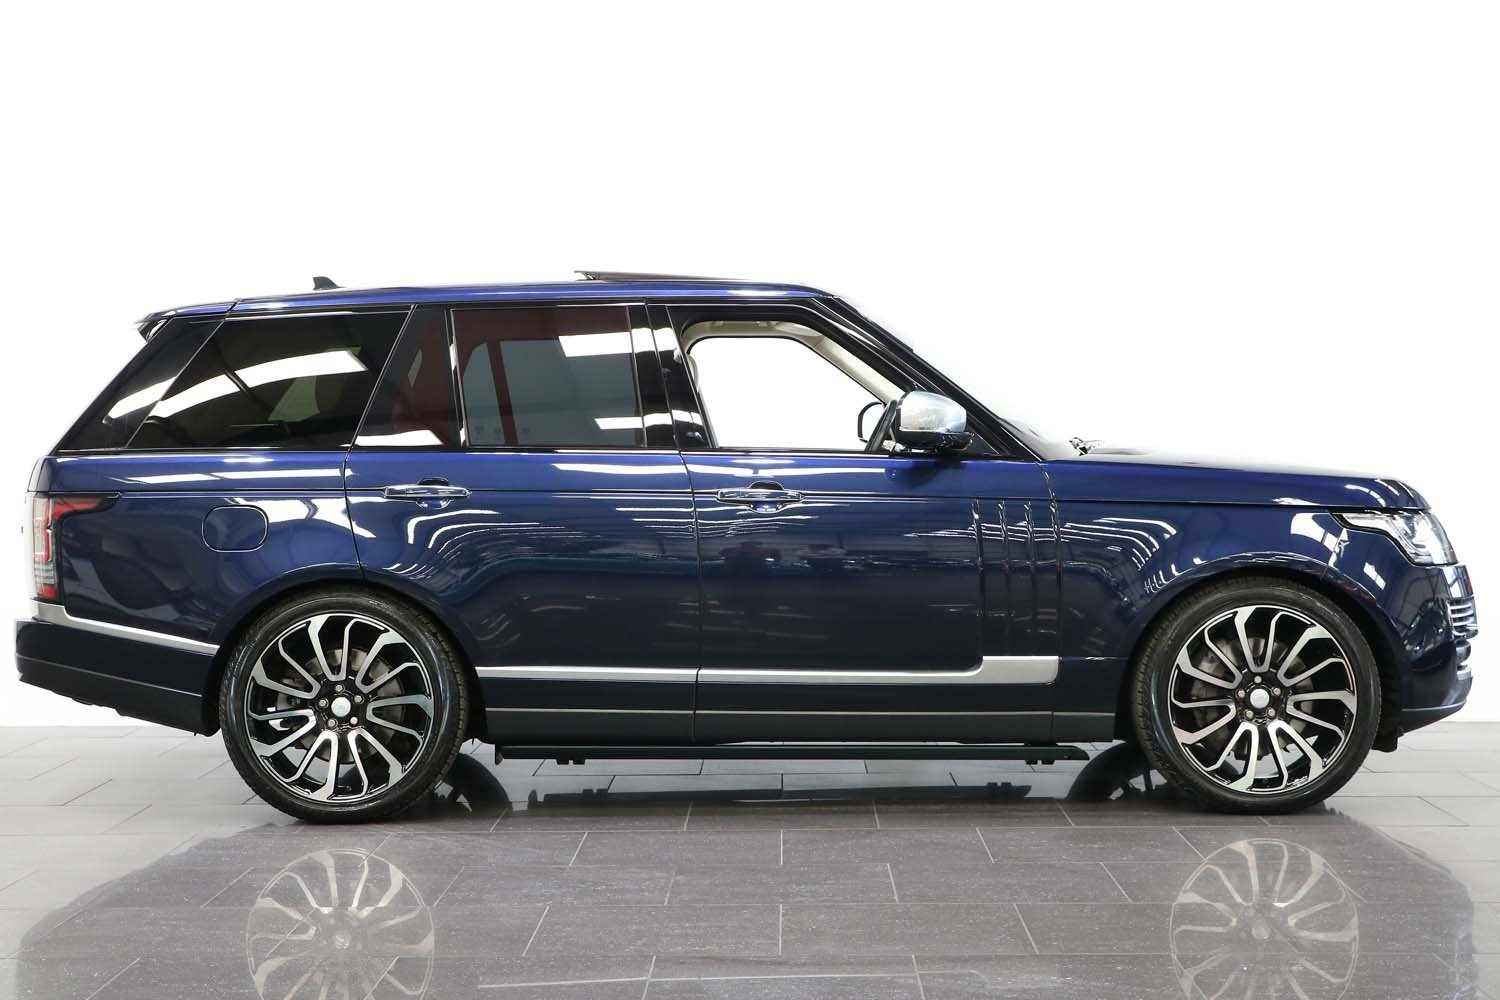 2015 15 15 RANGE ROVER 4.4 SDV8 AUTOBIOGRAPHY For Sale (picture 2 of 6)